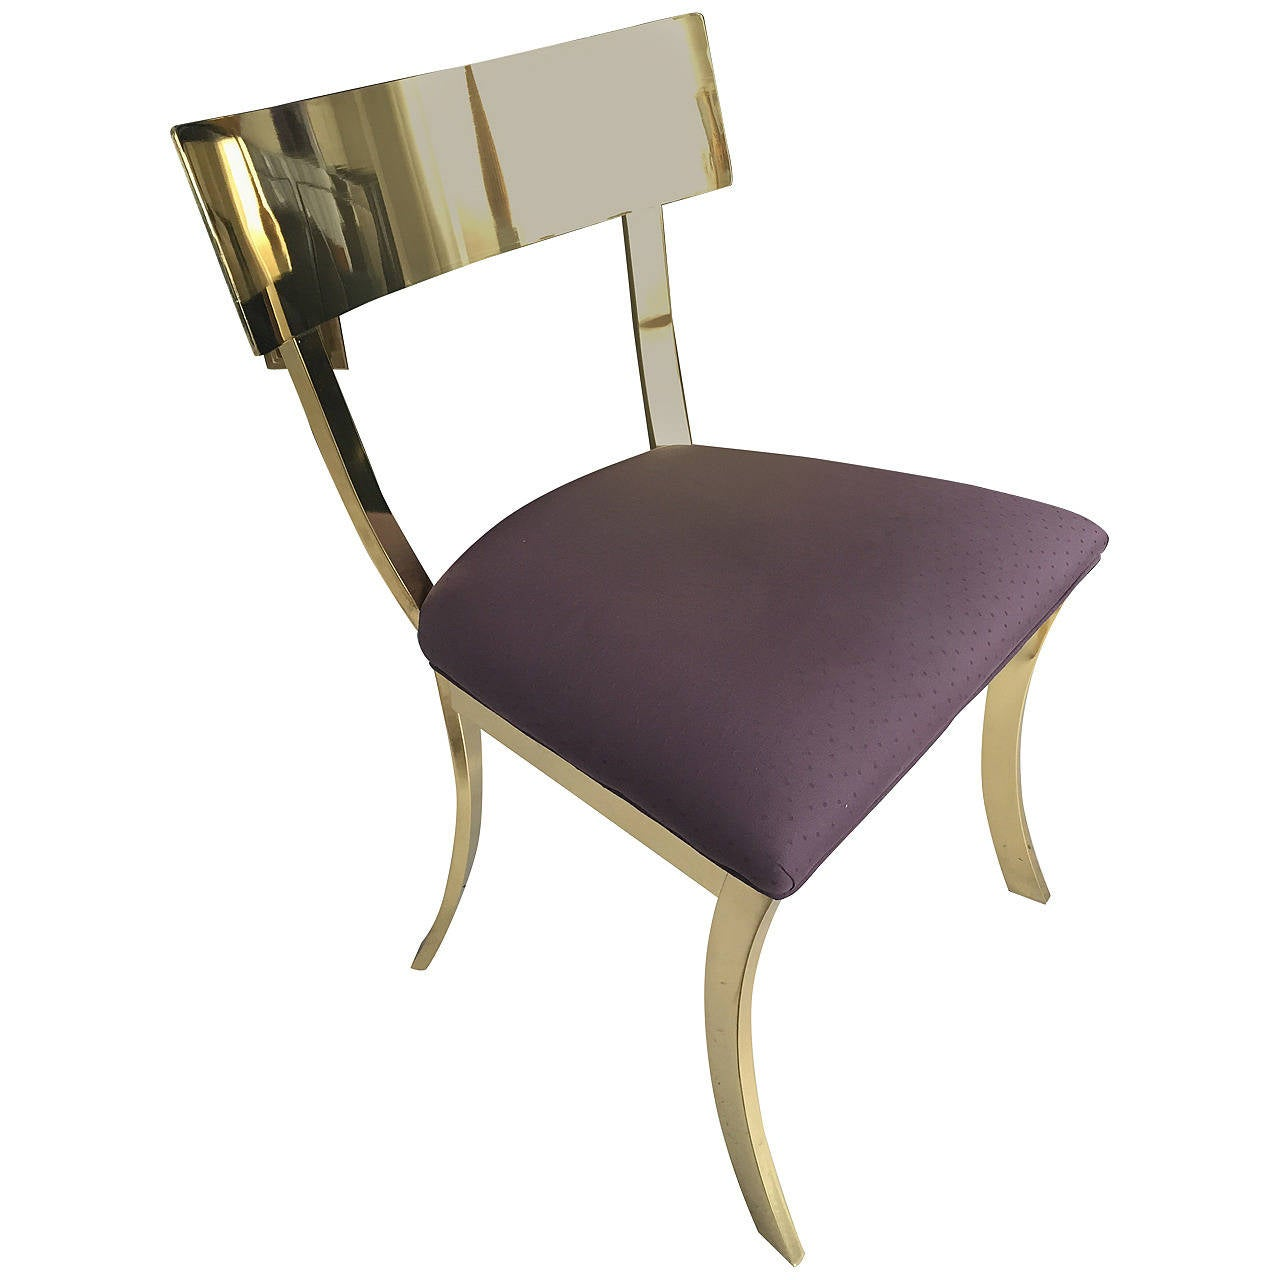 Stunning Polished Brass Klismos Chair by DIA at 1stdibs